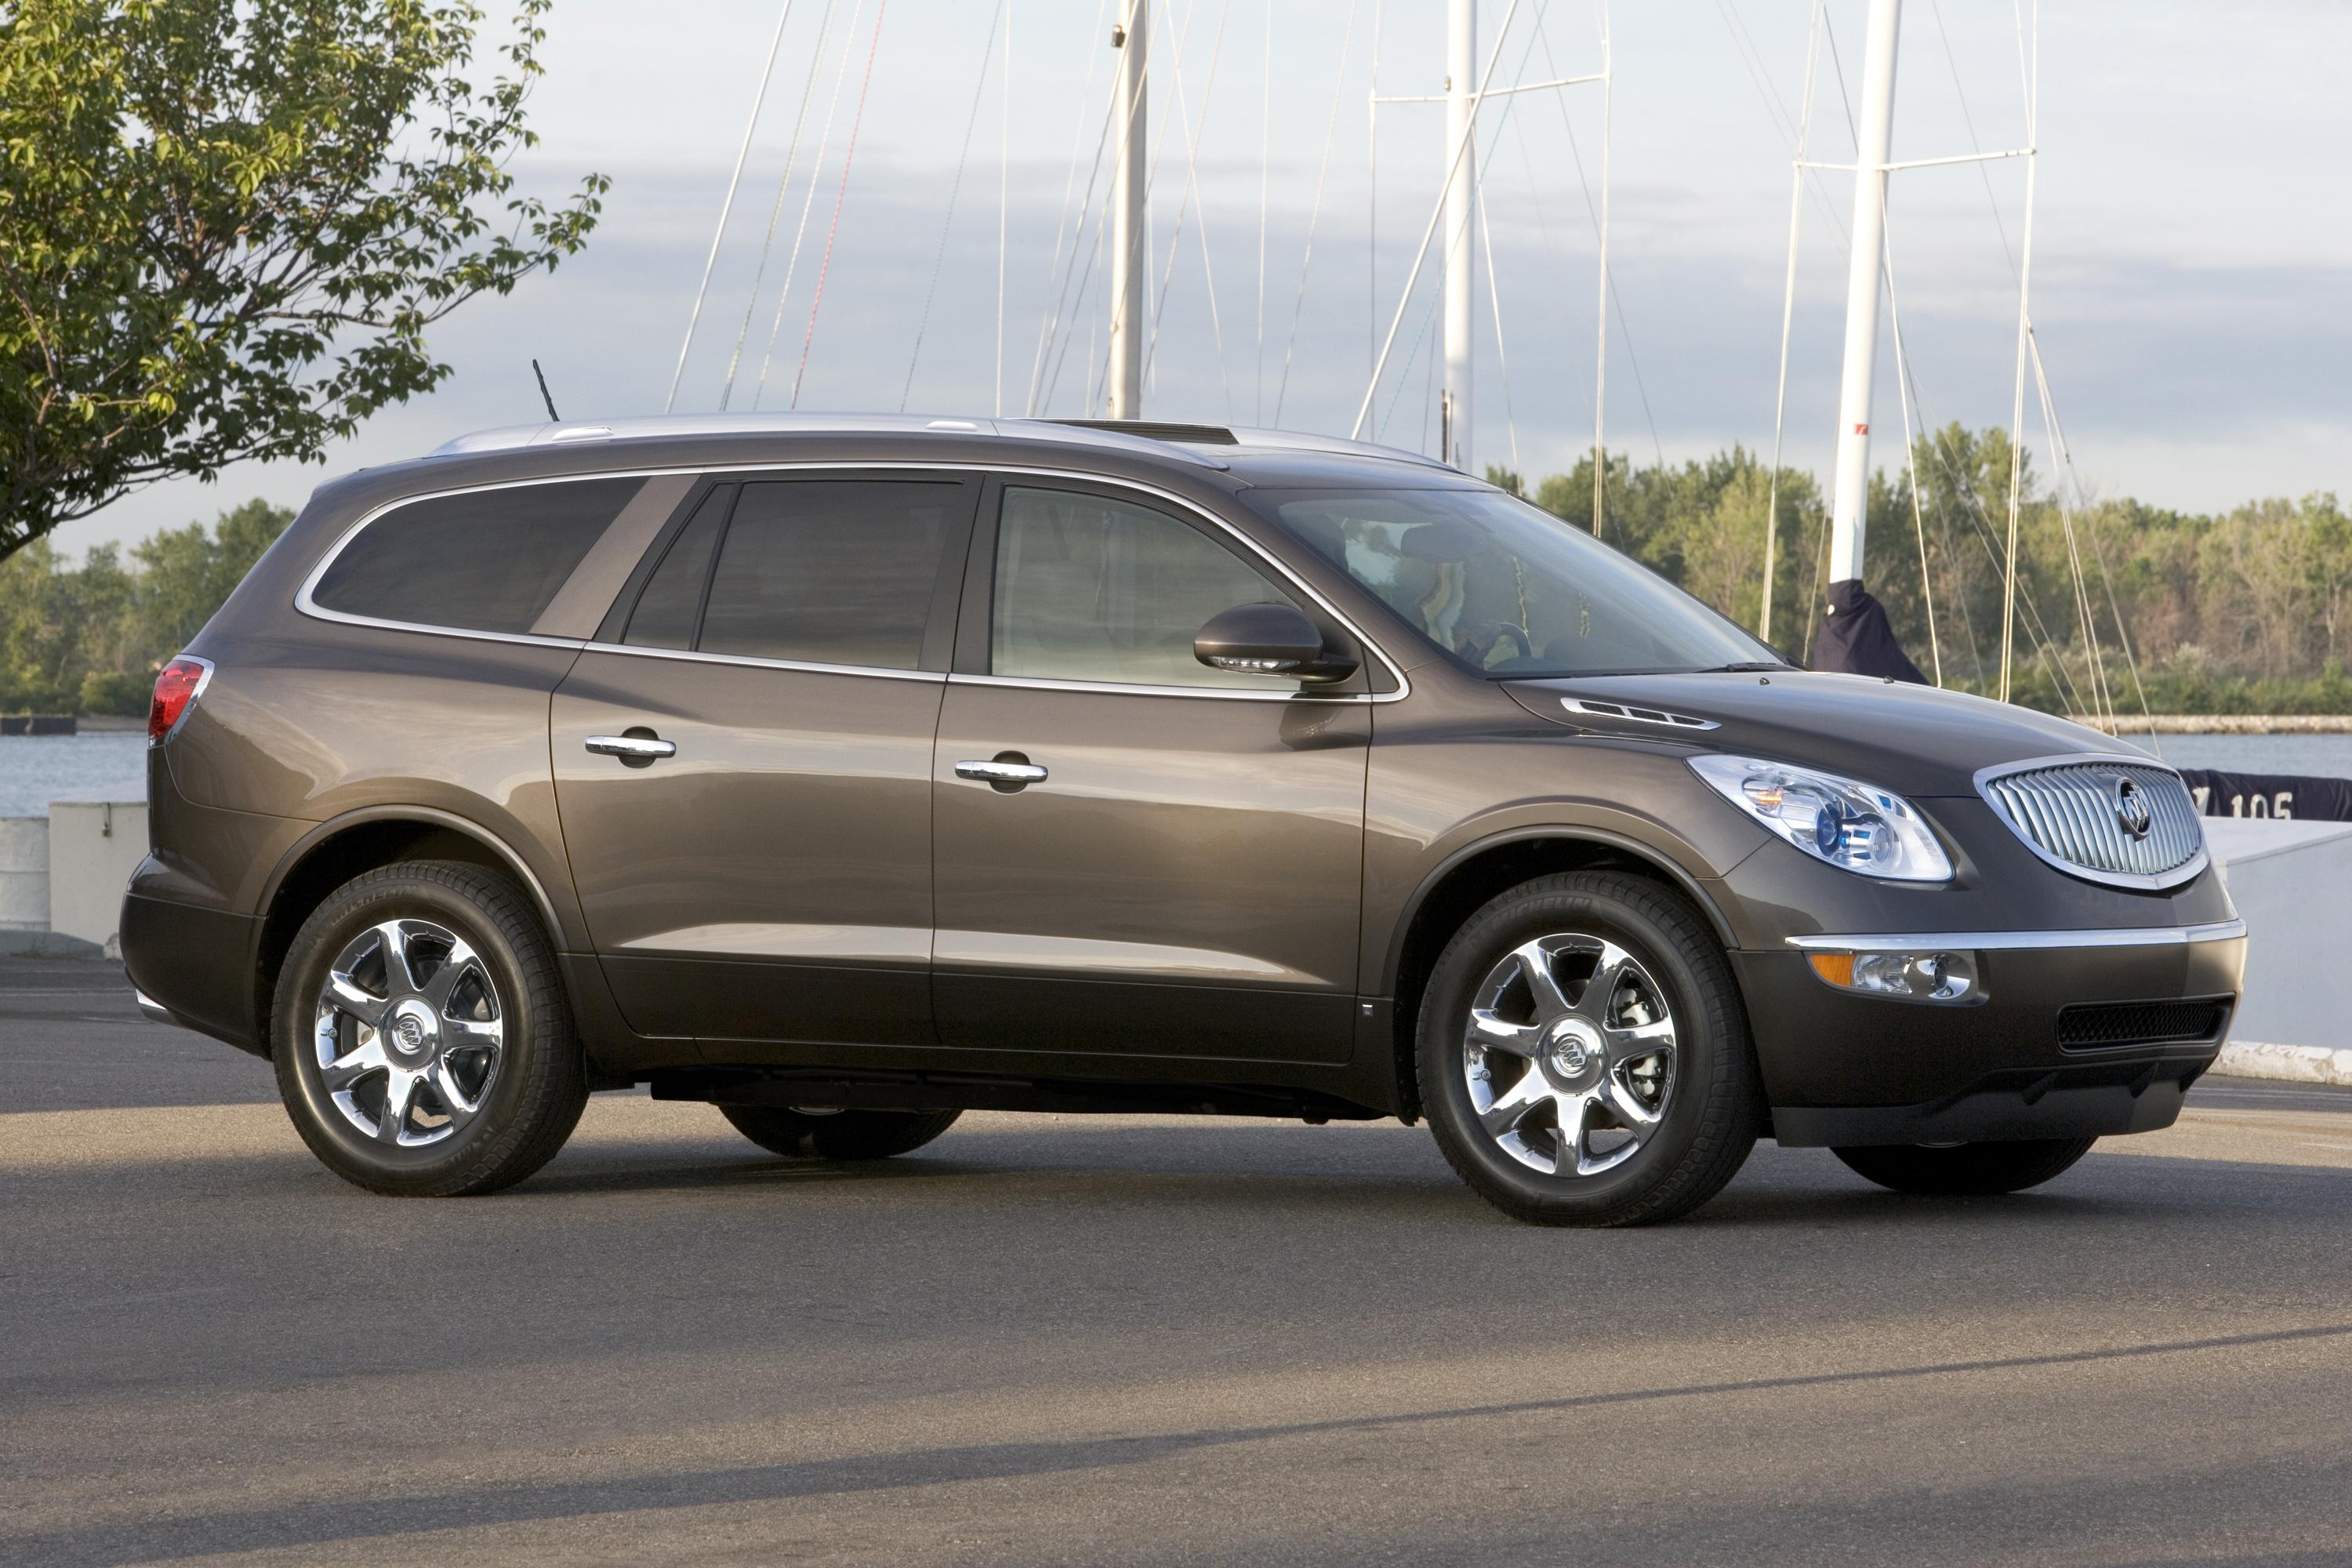 buick platinum enclave cars top speed review enclaves edition black